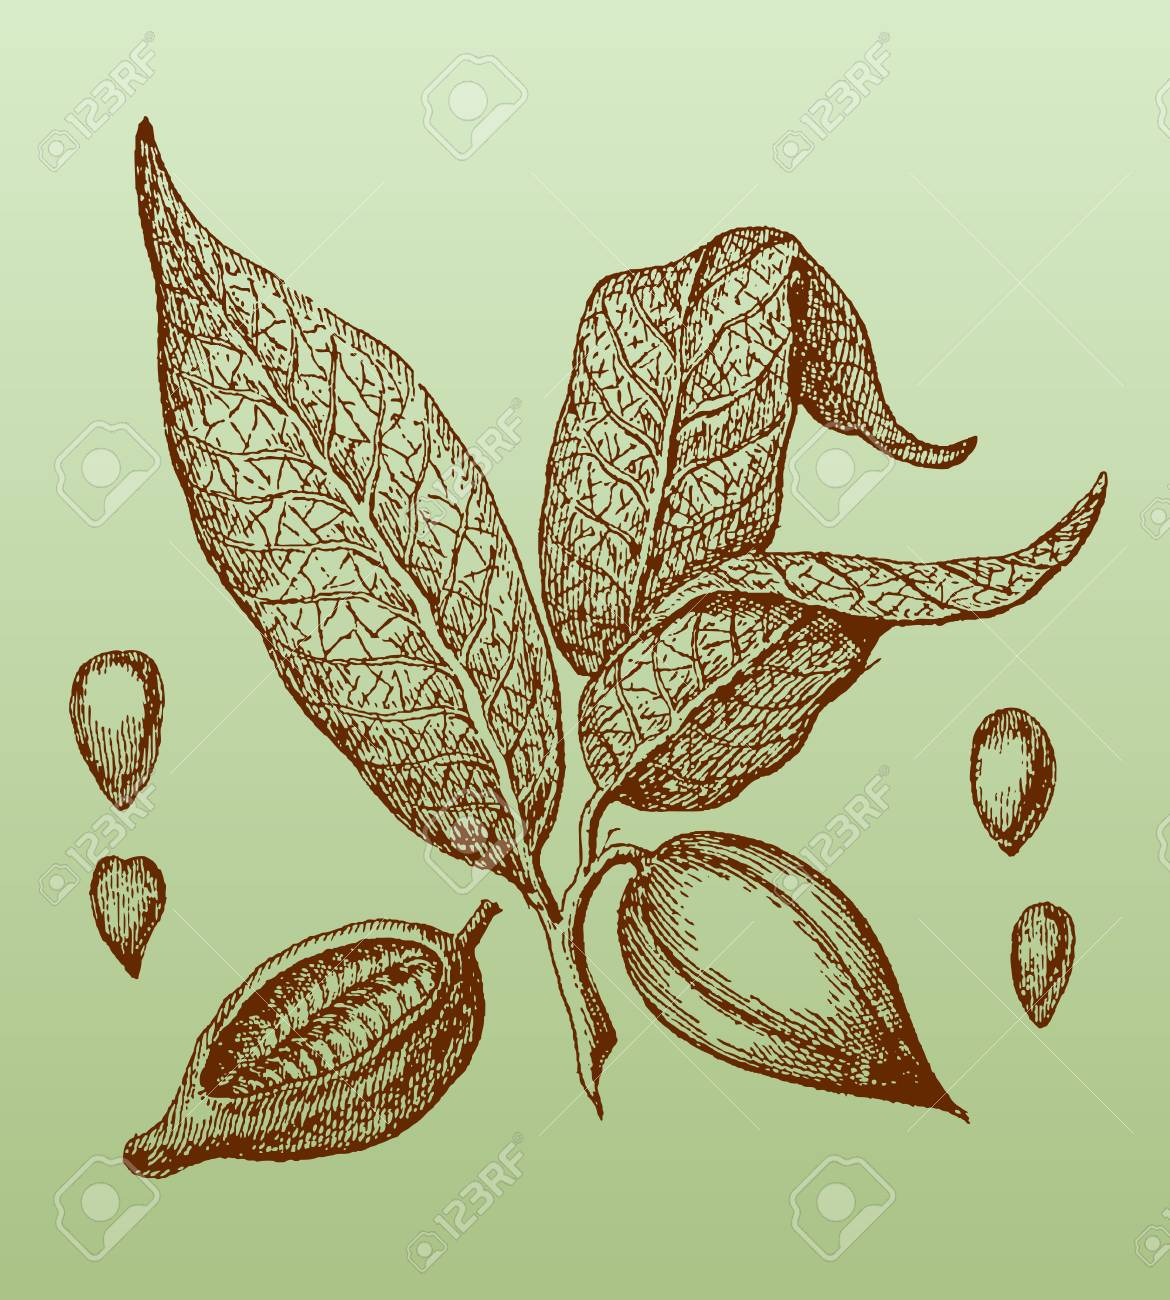 Branch Of The Cacao Tree Theobroma Cacao With Leaves Fruits Royalty Free Cliparts Vectors And Stock Illustration Image 101170177